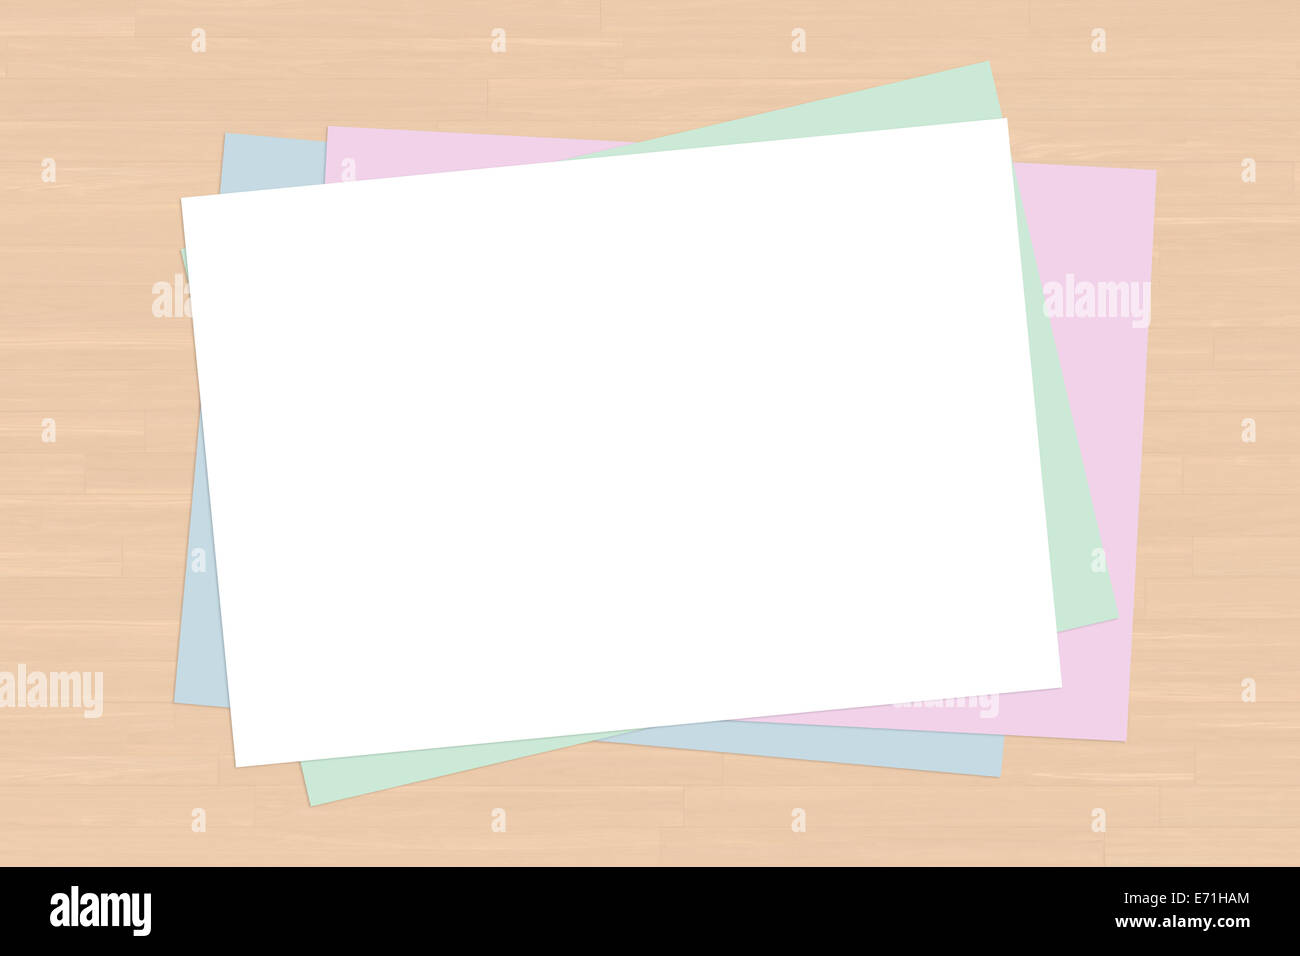 Top view of blank colorful note paper sheet on wooden table. - Stock Image